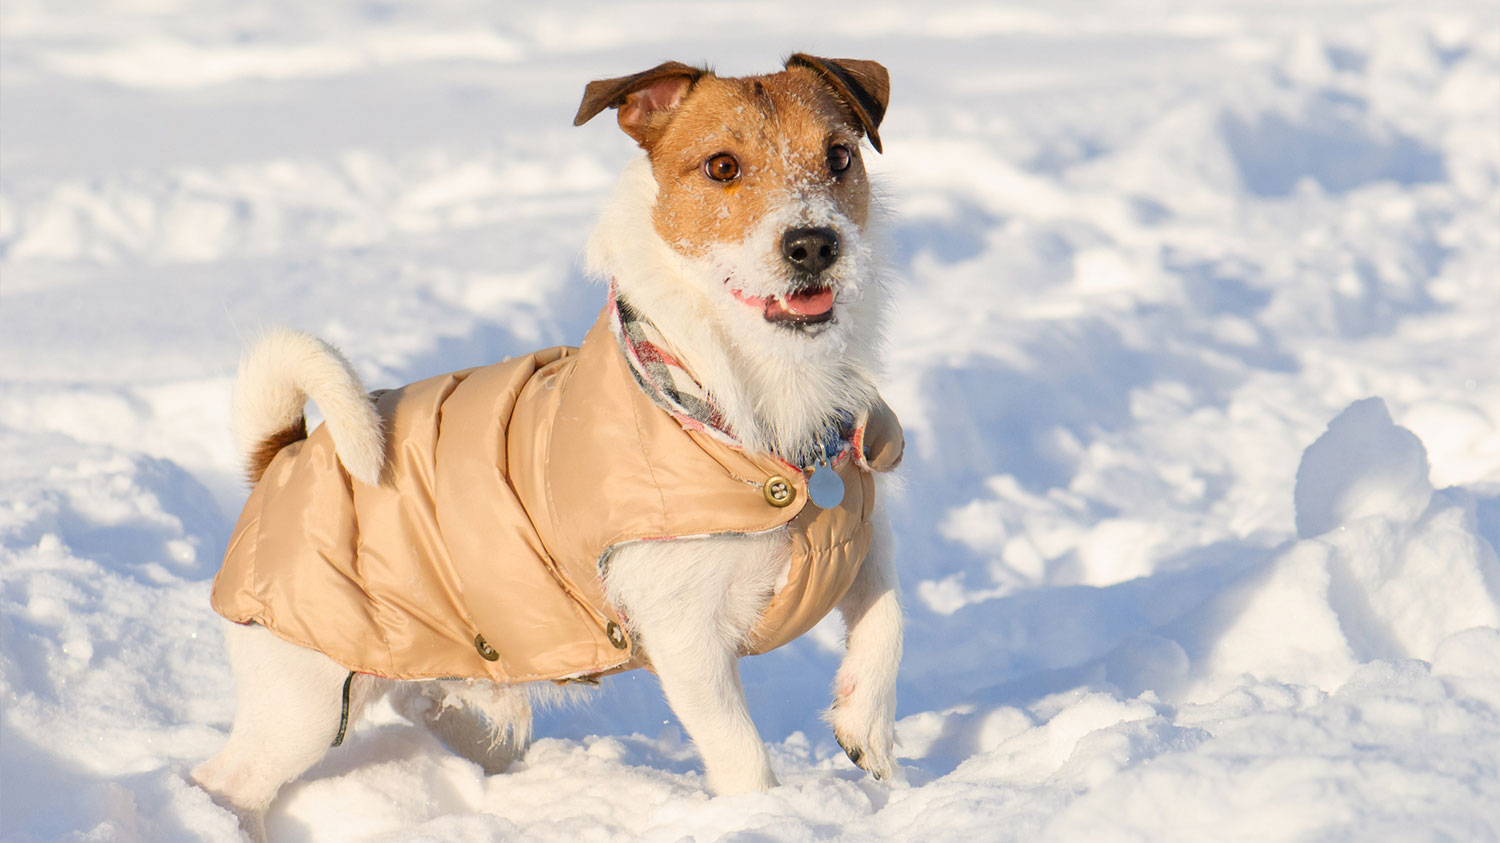 Little dog in snow with jacket